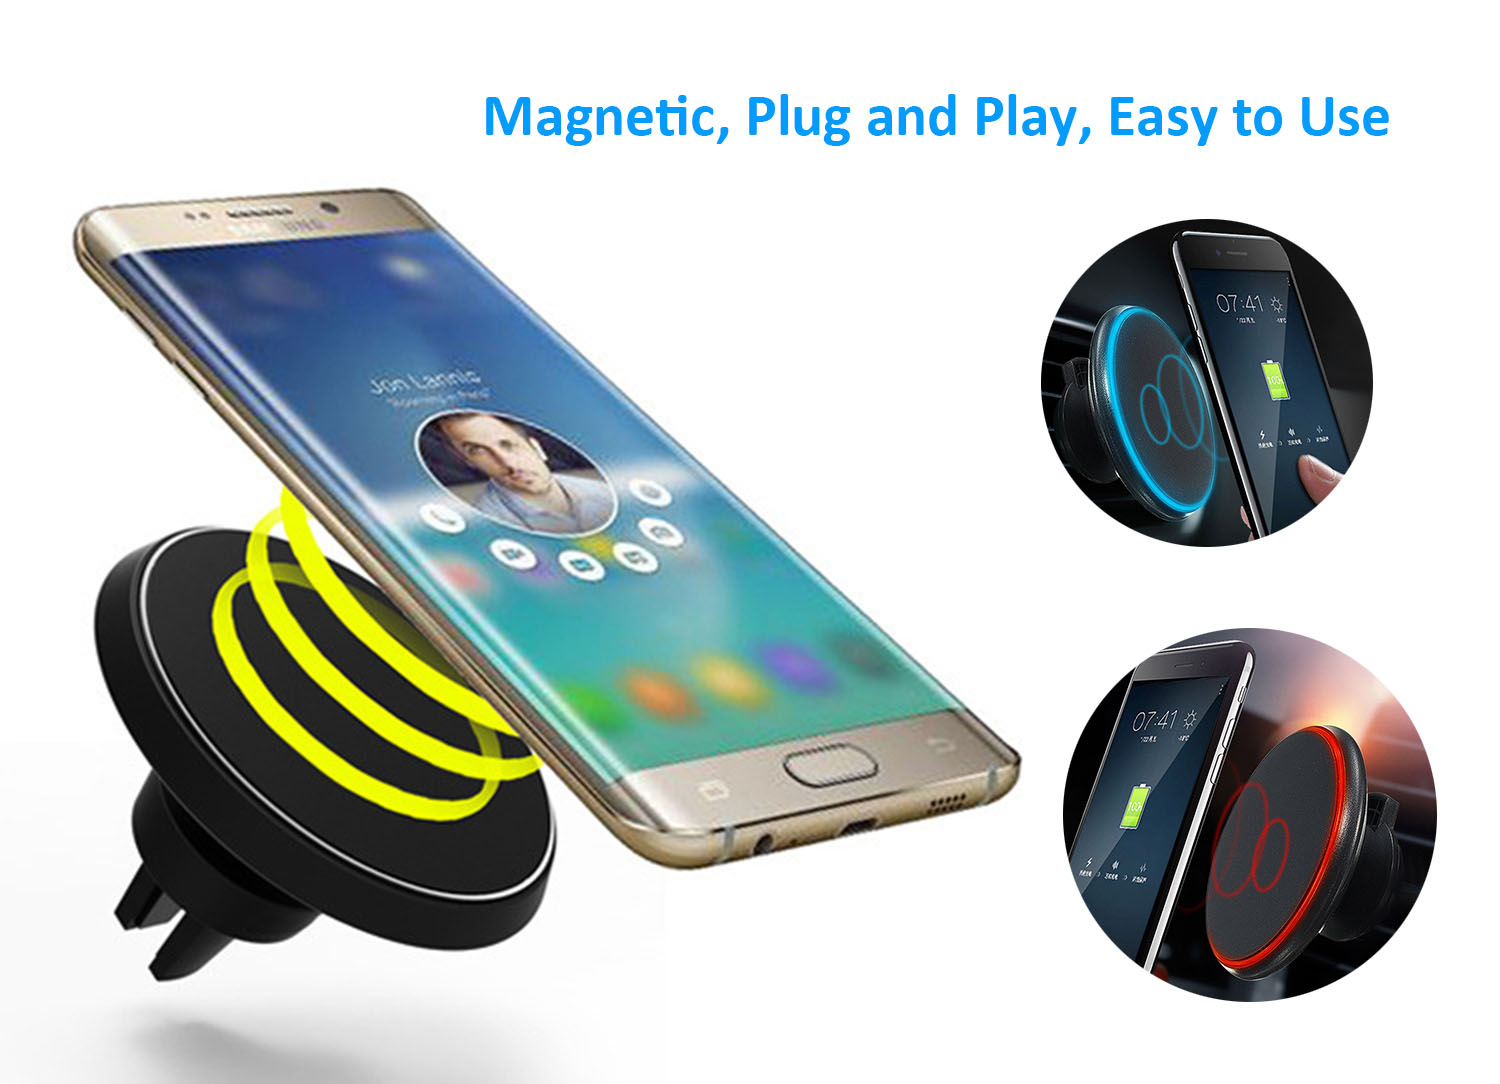 Details about Fast Qi Wireless Car Charger Air Vent Mount Holder For iPhone X 8 Samsung S8 S7